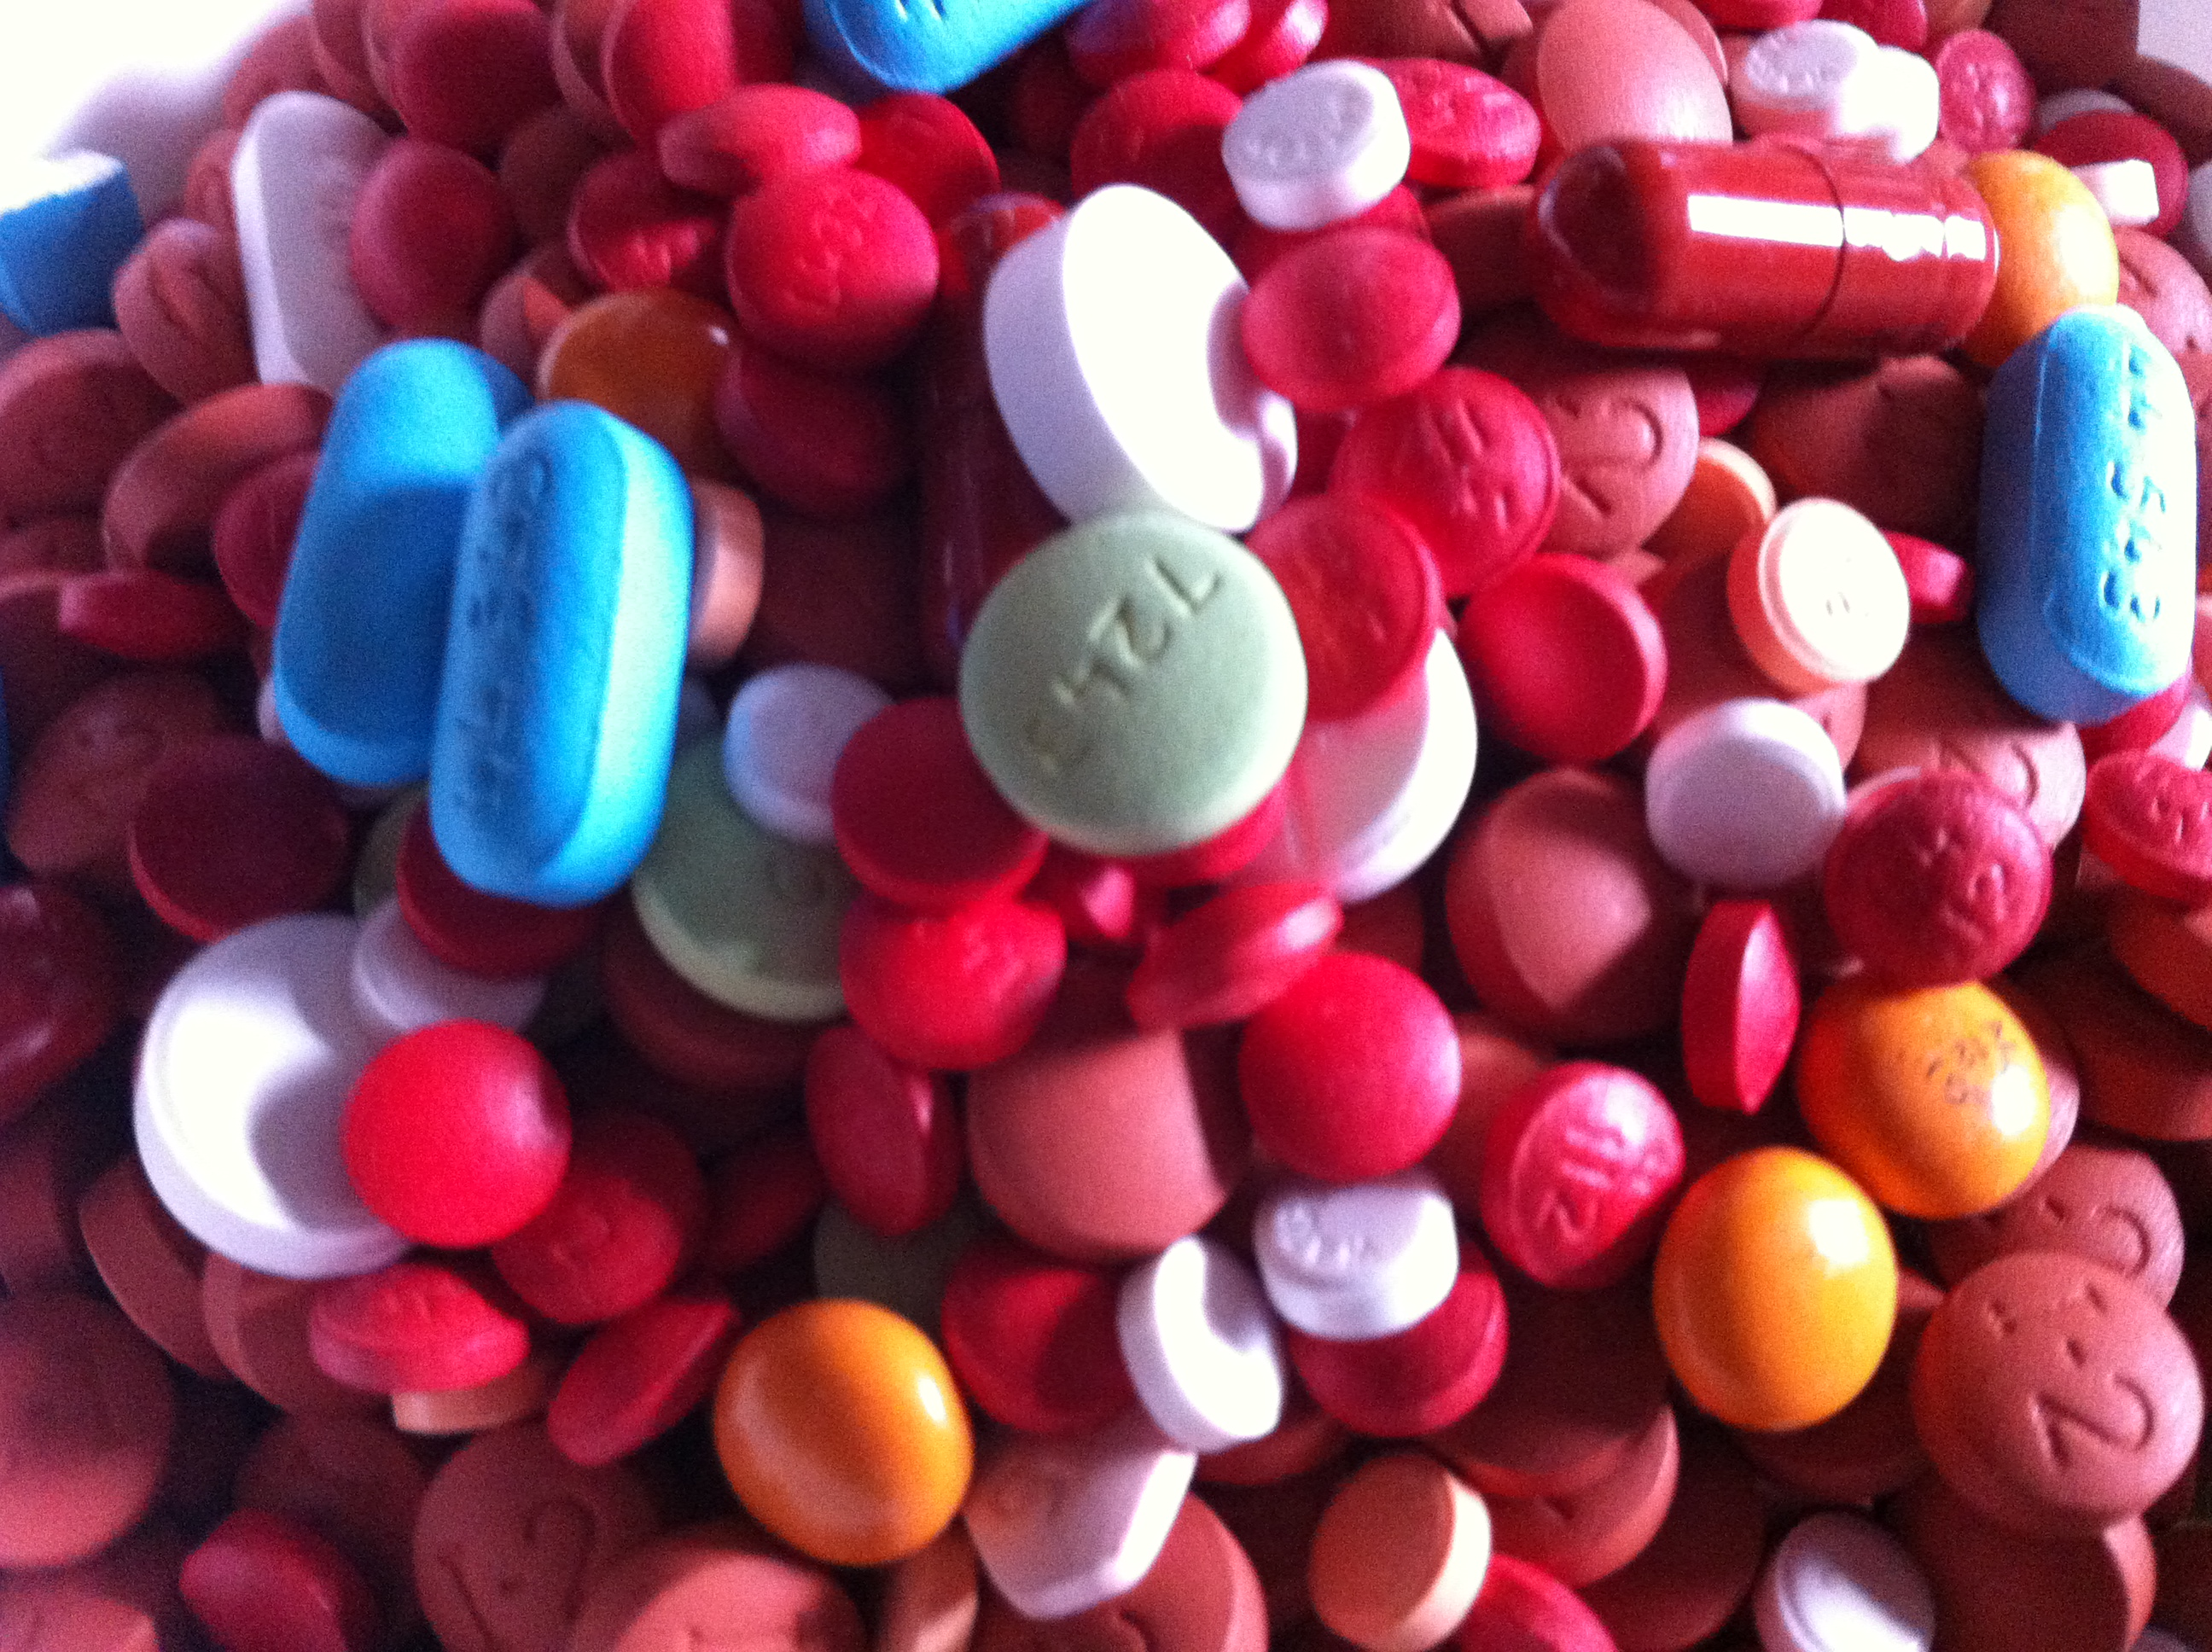 File:Assorted Pills 3.JPG - Wikimedia Commons